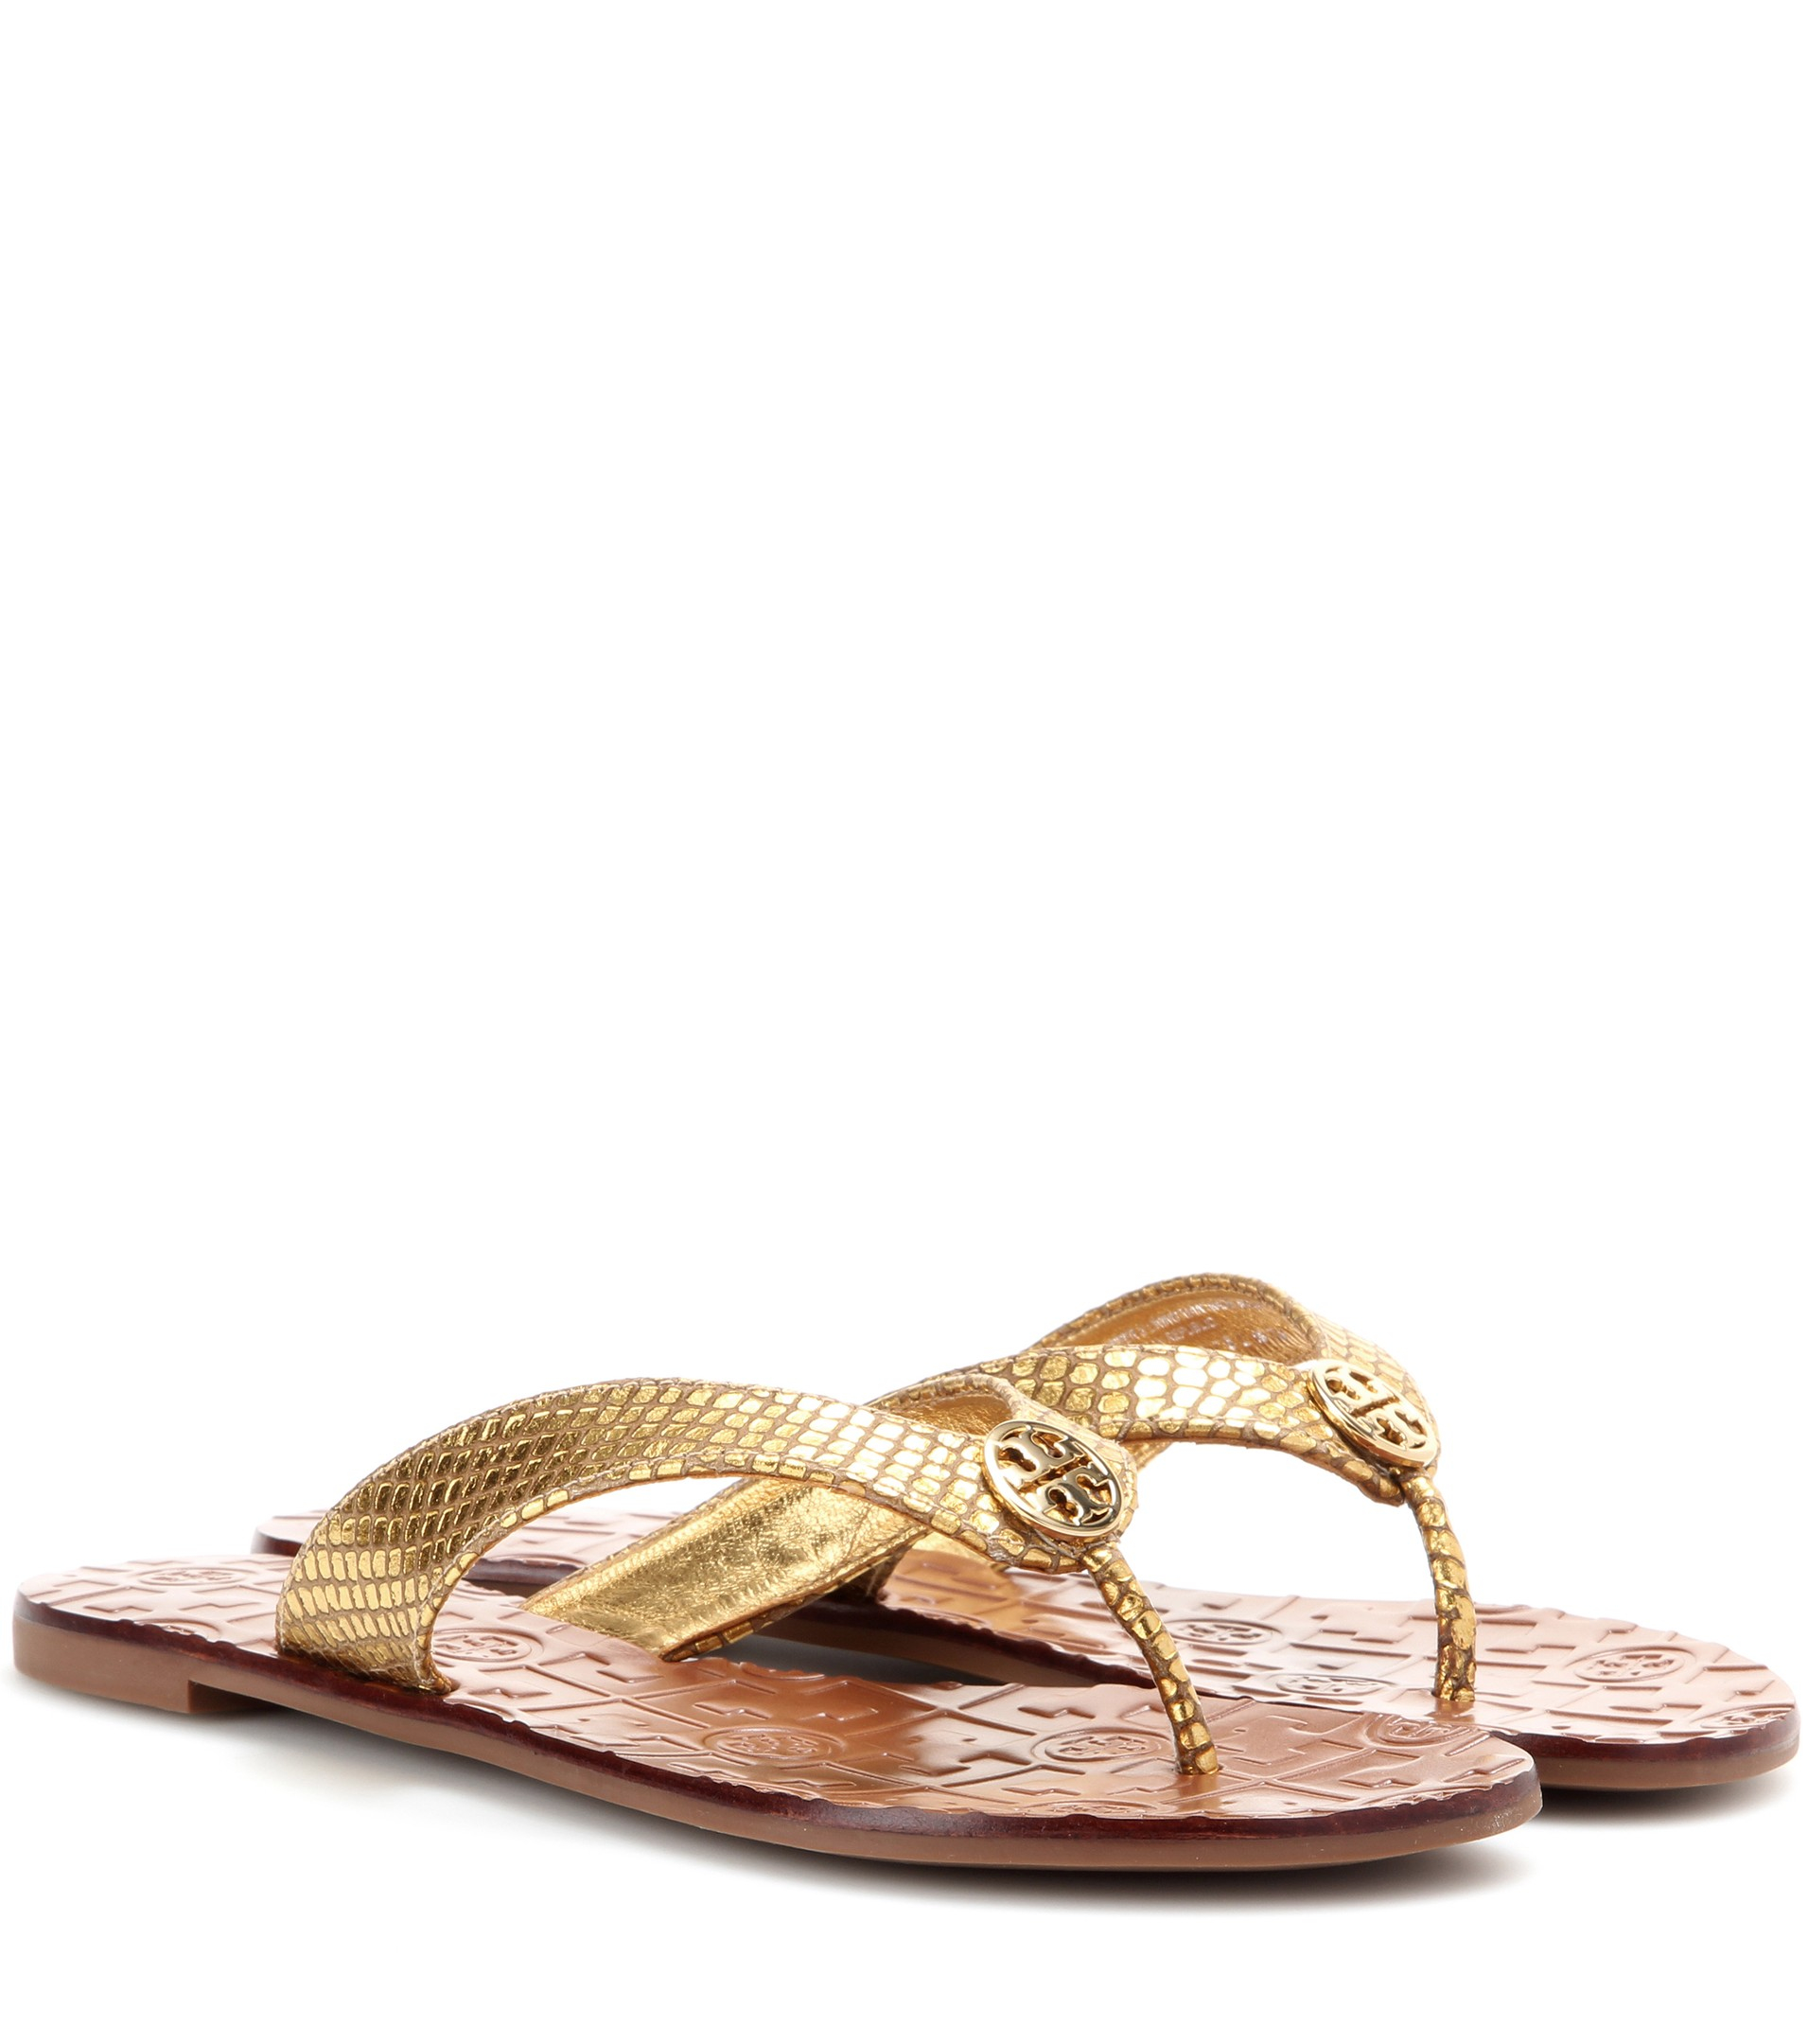 13fb80f8216 ... norway lyst tory burch thora metallic leather sandals in metallic 34706  a8f40